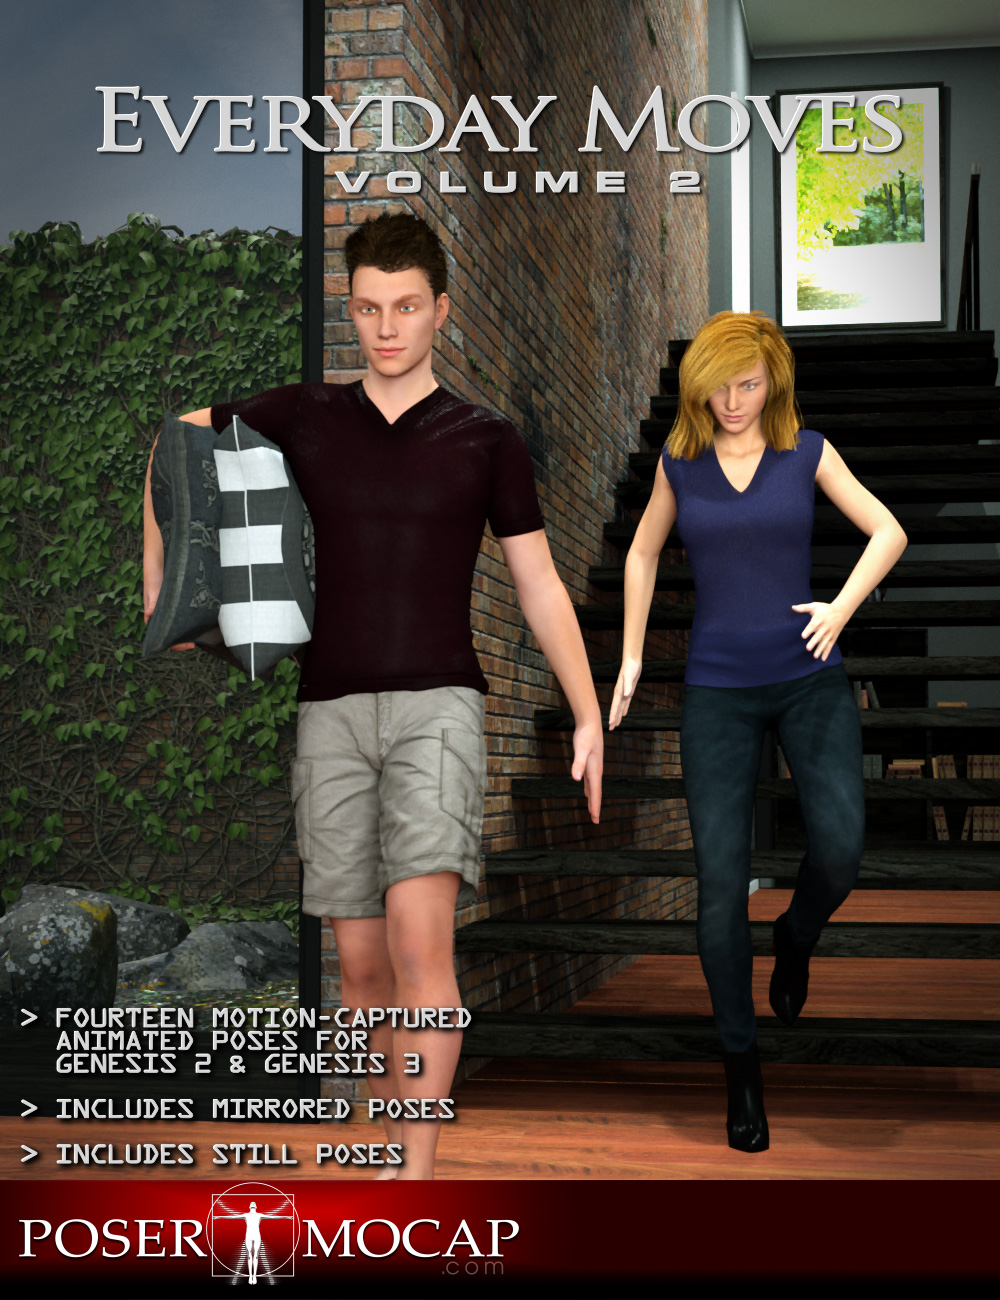 Everyday Moves Volume 2 - Everyday Animations and Aniblocks for Genesis 2 and 3 by: Posermocap, 3D Models by Daz 3D